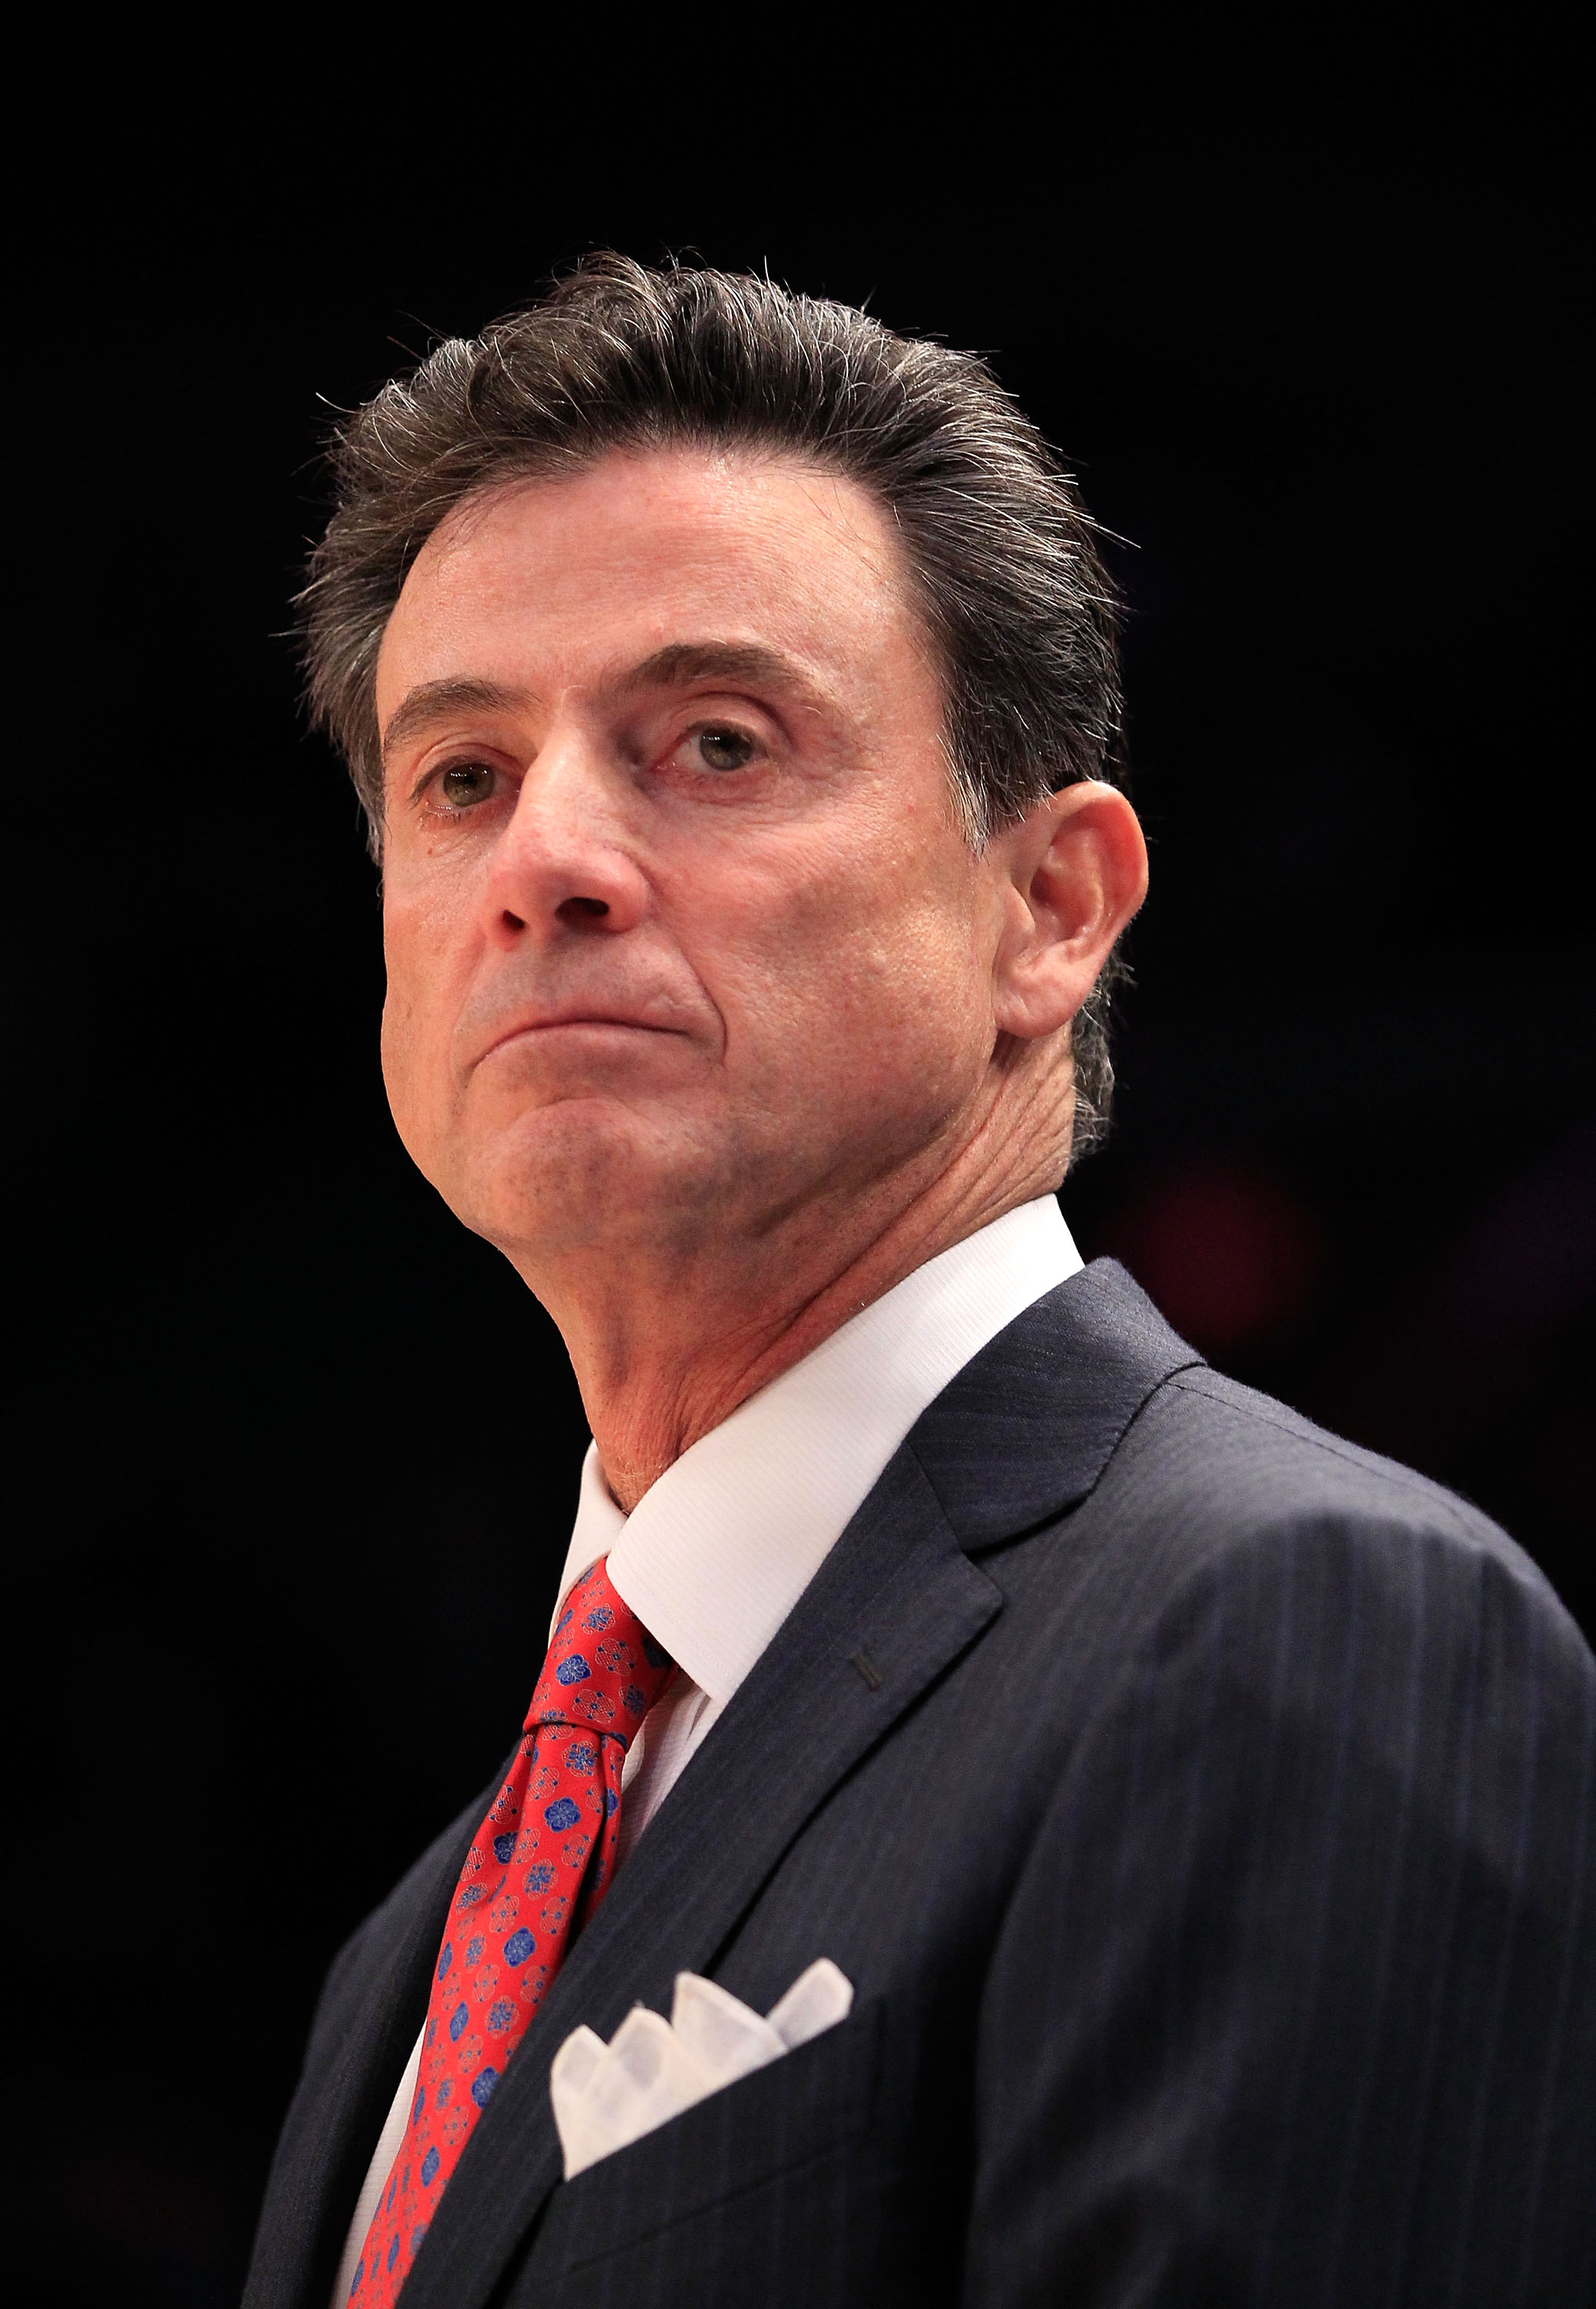 NEW YORK, NY - MARCH 10: Head coach Rick Pitino of the Louisville Cardinals looks on from the bench during the game against the Marquette Golden Eagles during the quarterfinals of the 2011 Big East Men's Basketball Tournament presented by American Eagle O